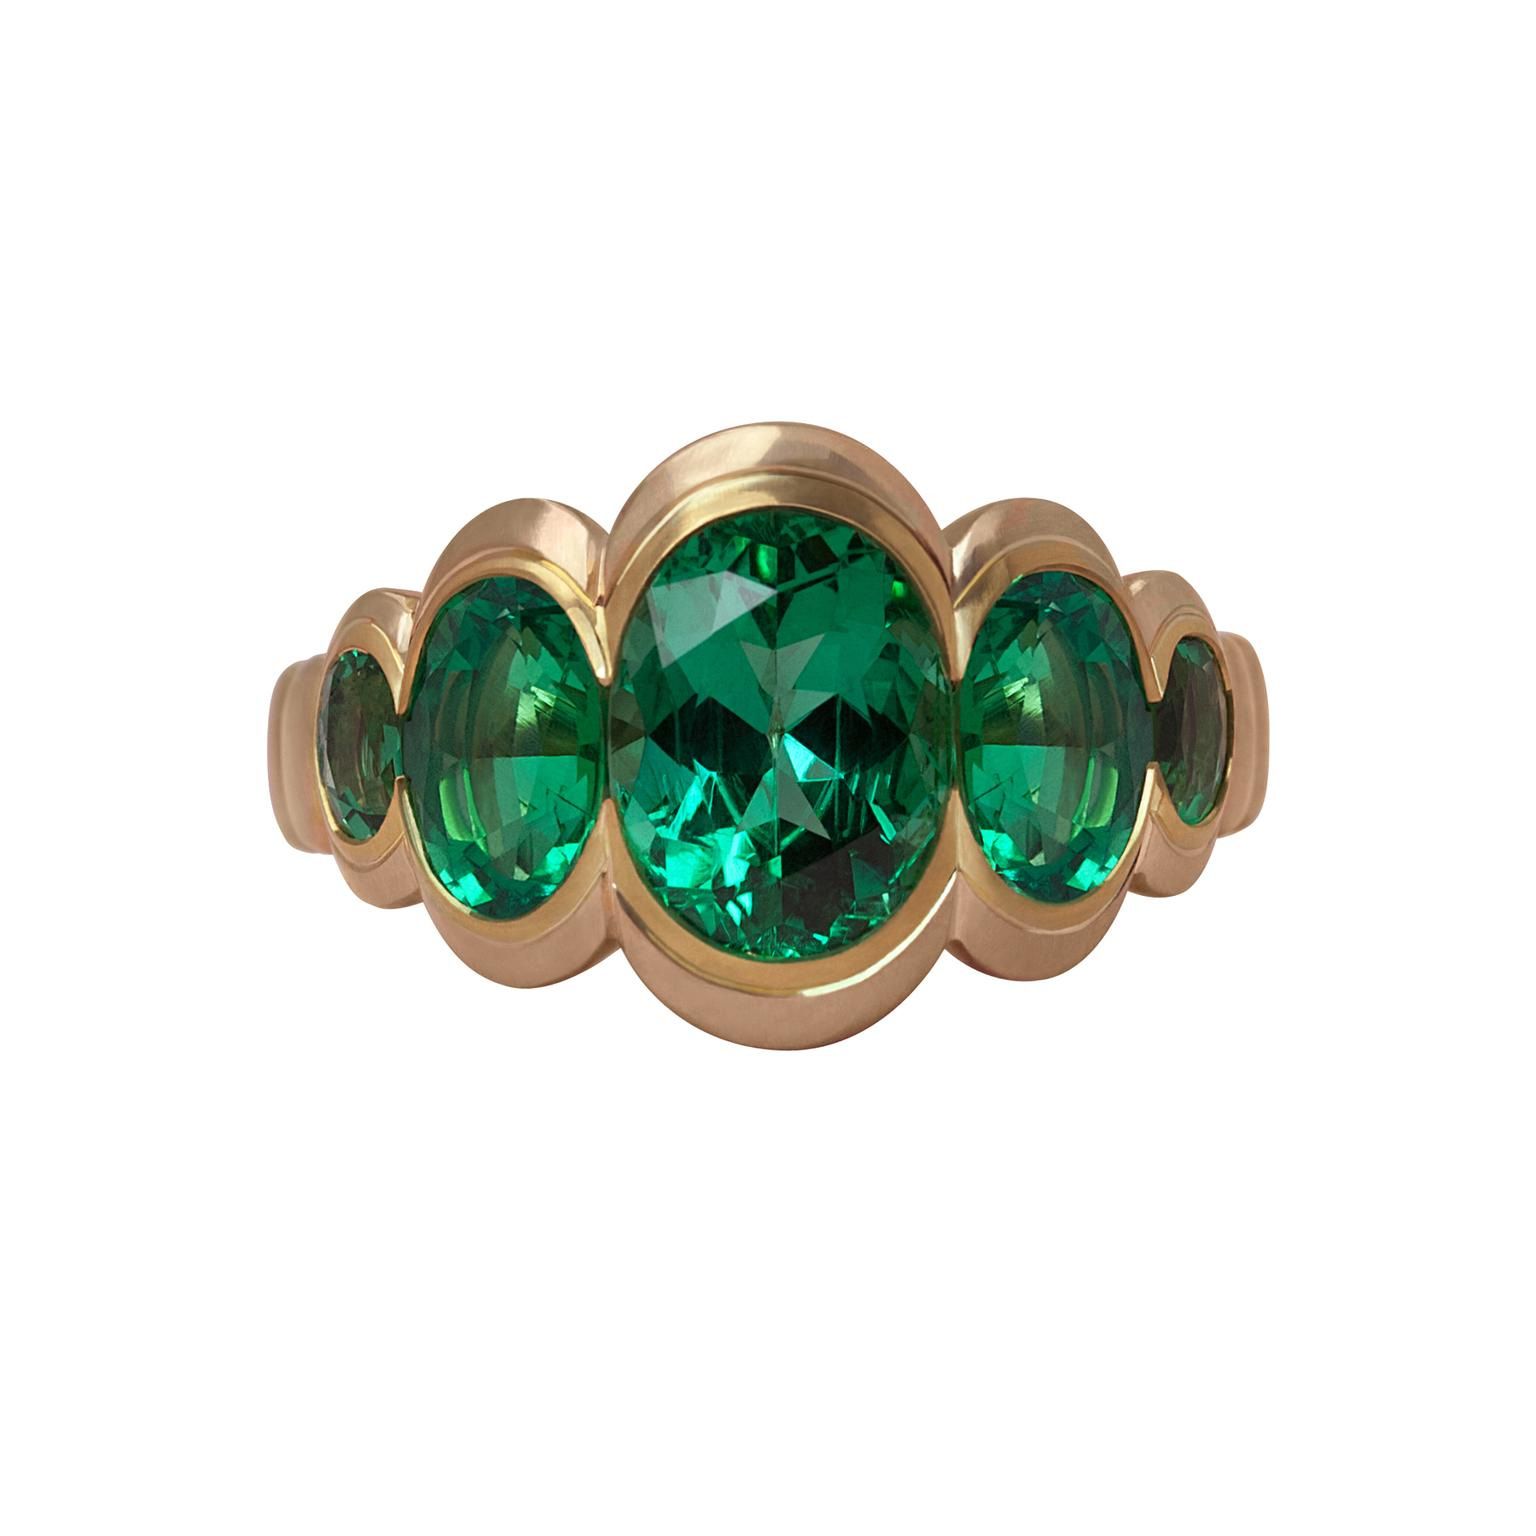 Ming Lampson Caterpillar emerald ring